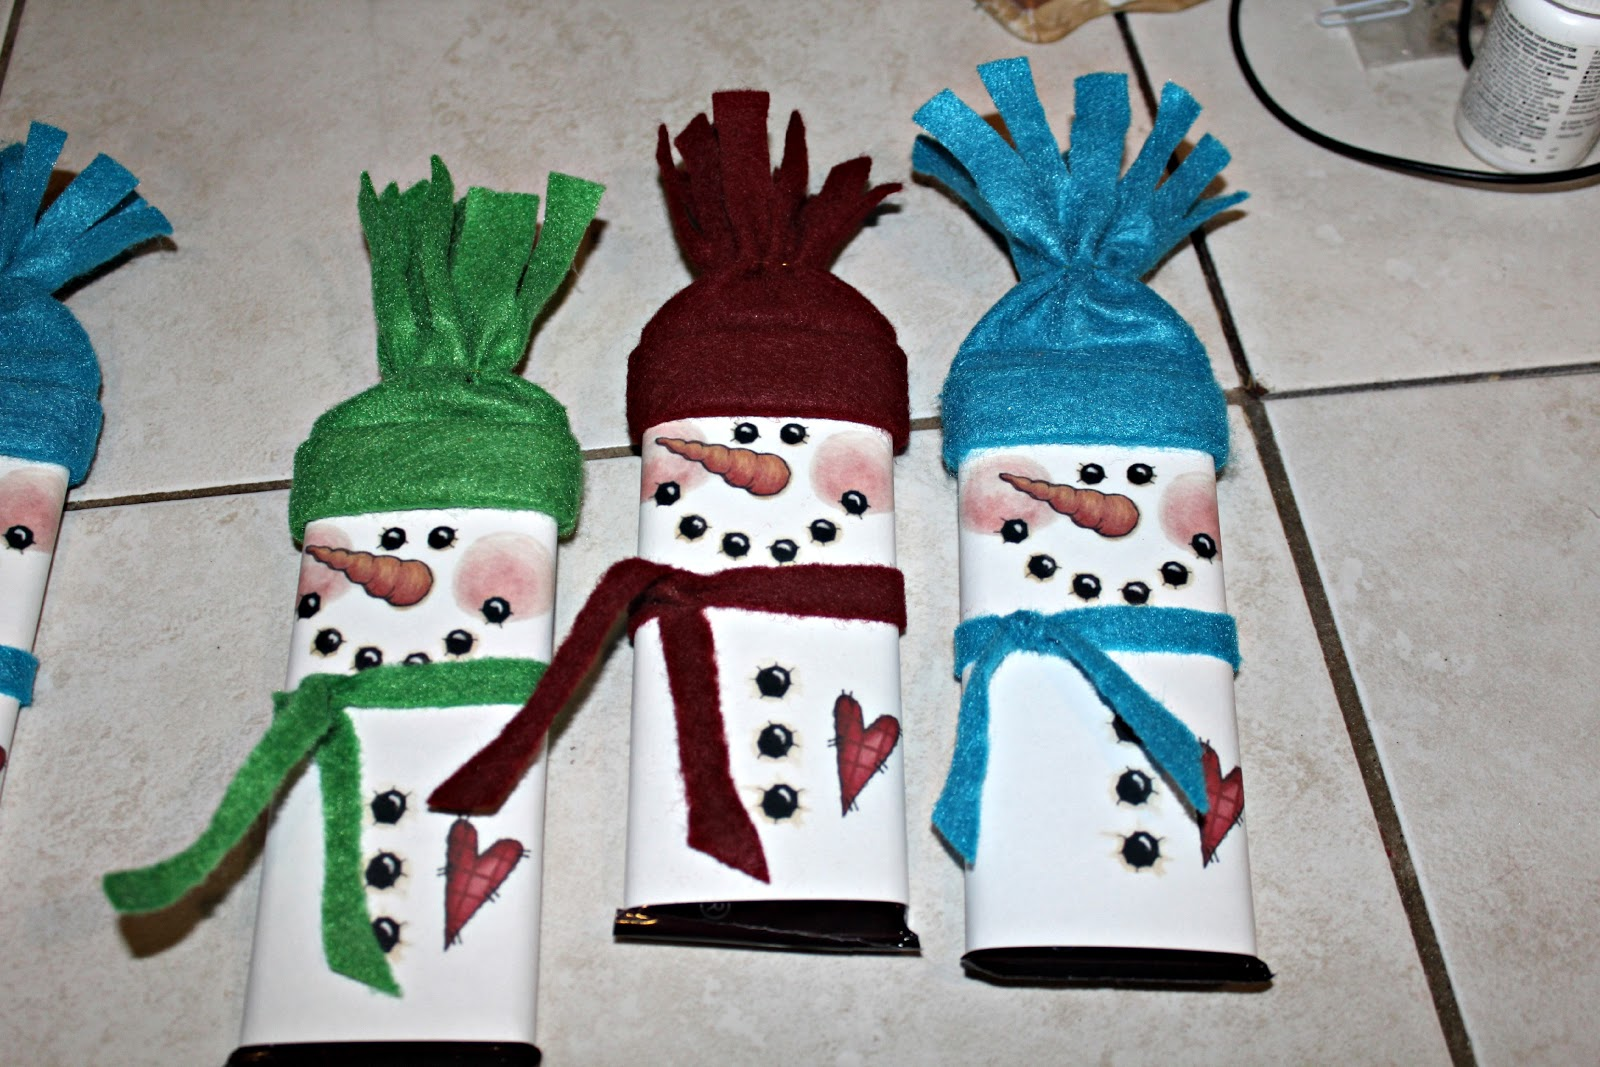 deanne u0026 39 s crafting adventures  snowman hershey bar gifts